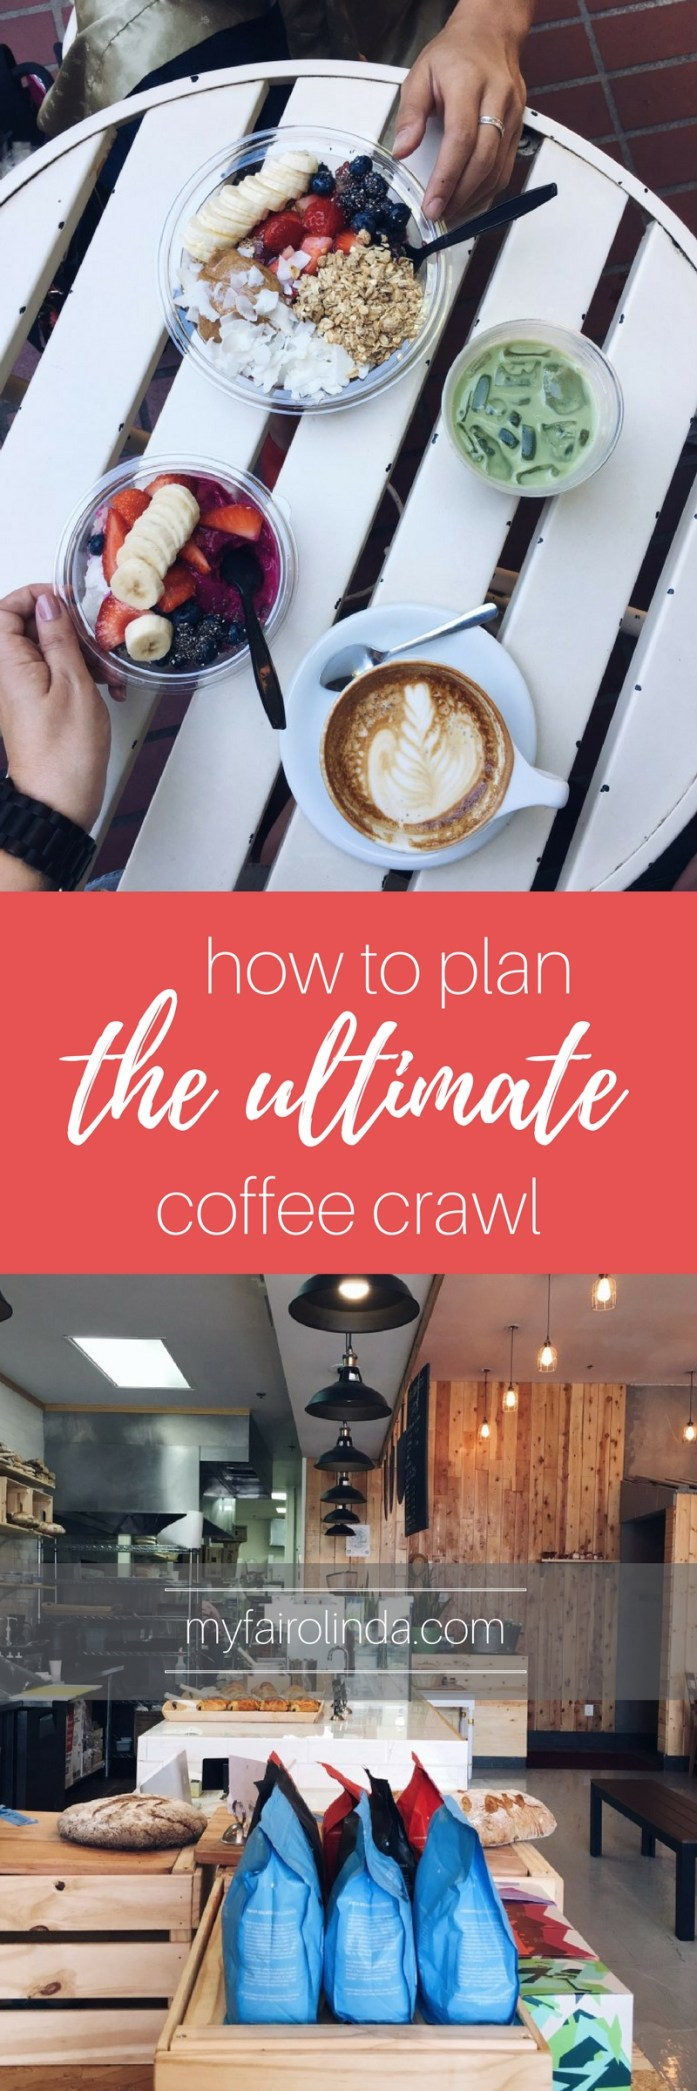 How to plan the ultimate coffee crawl. #coffee #coffeelove